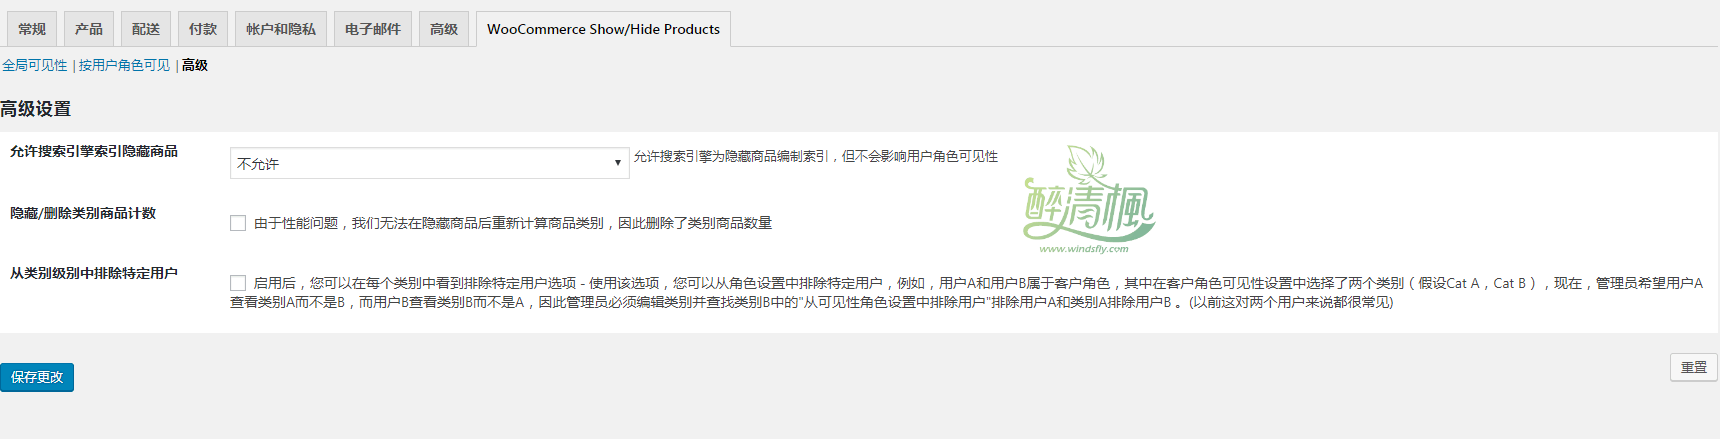 Woocommerce隐藏商品插件 - Show/Hide Products or Categories by User Roles(汉化)[更新至v6.1] WooCommerce插件 第4张